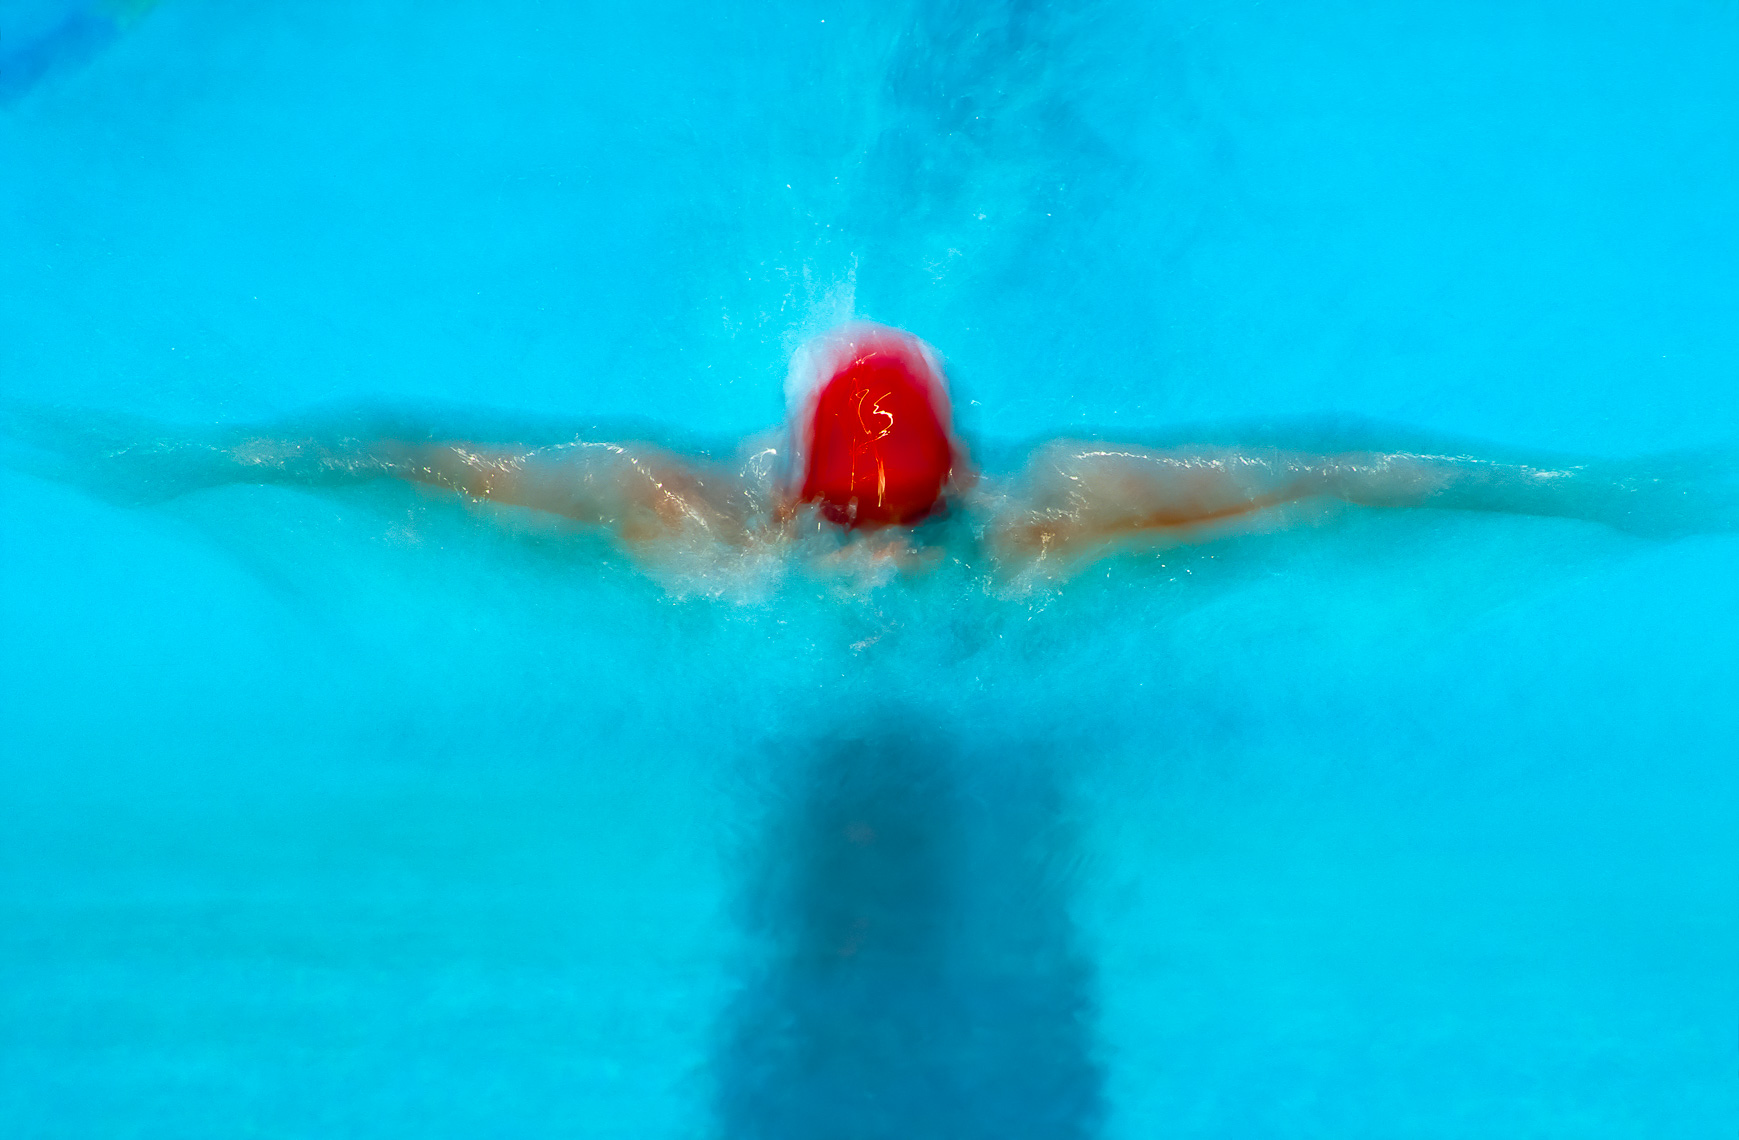 Artistic Sports Butterfly Swimmer